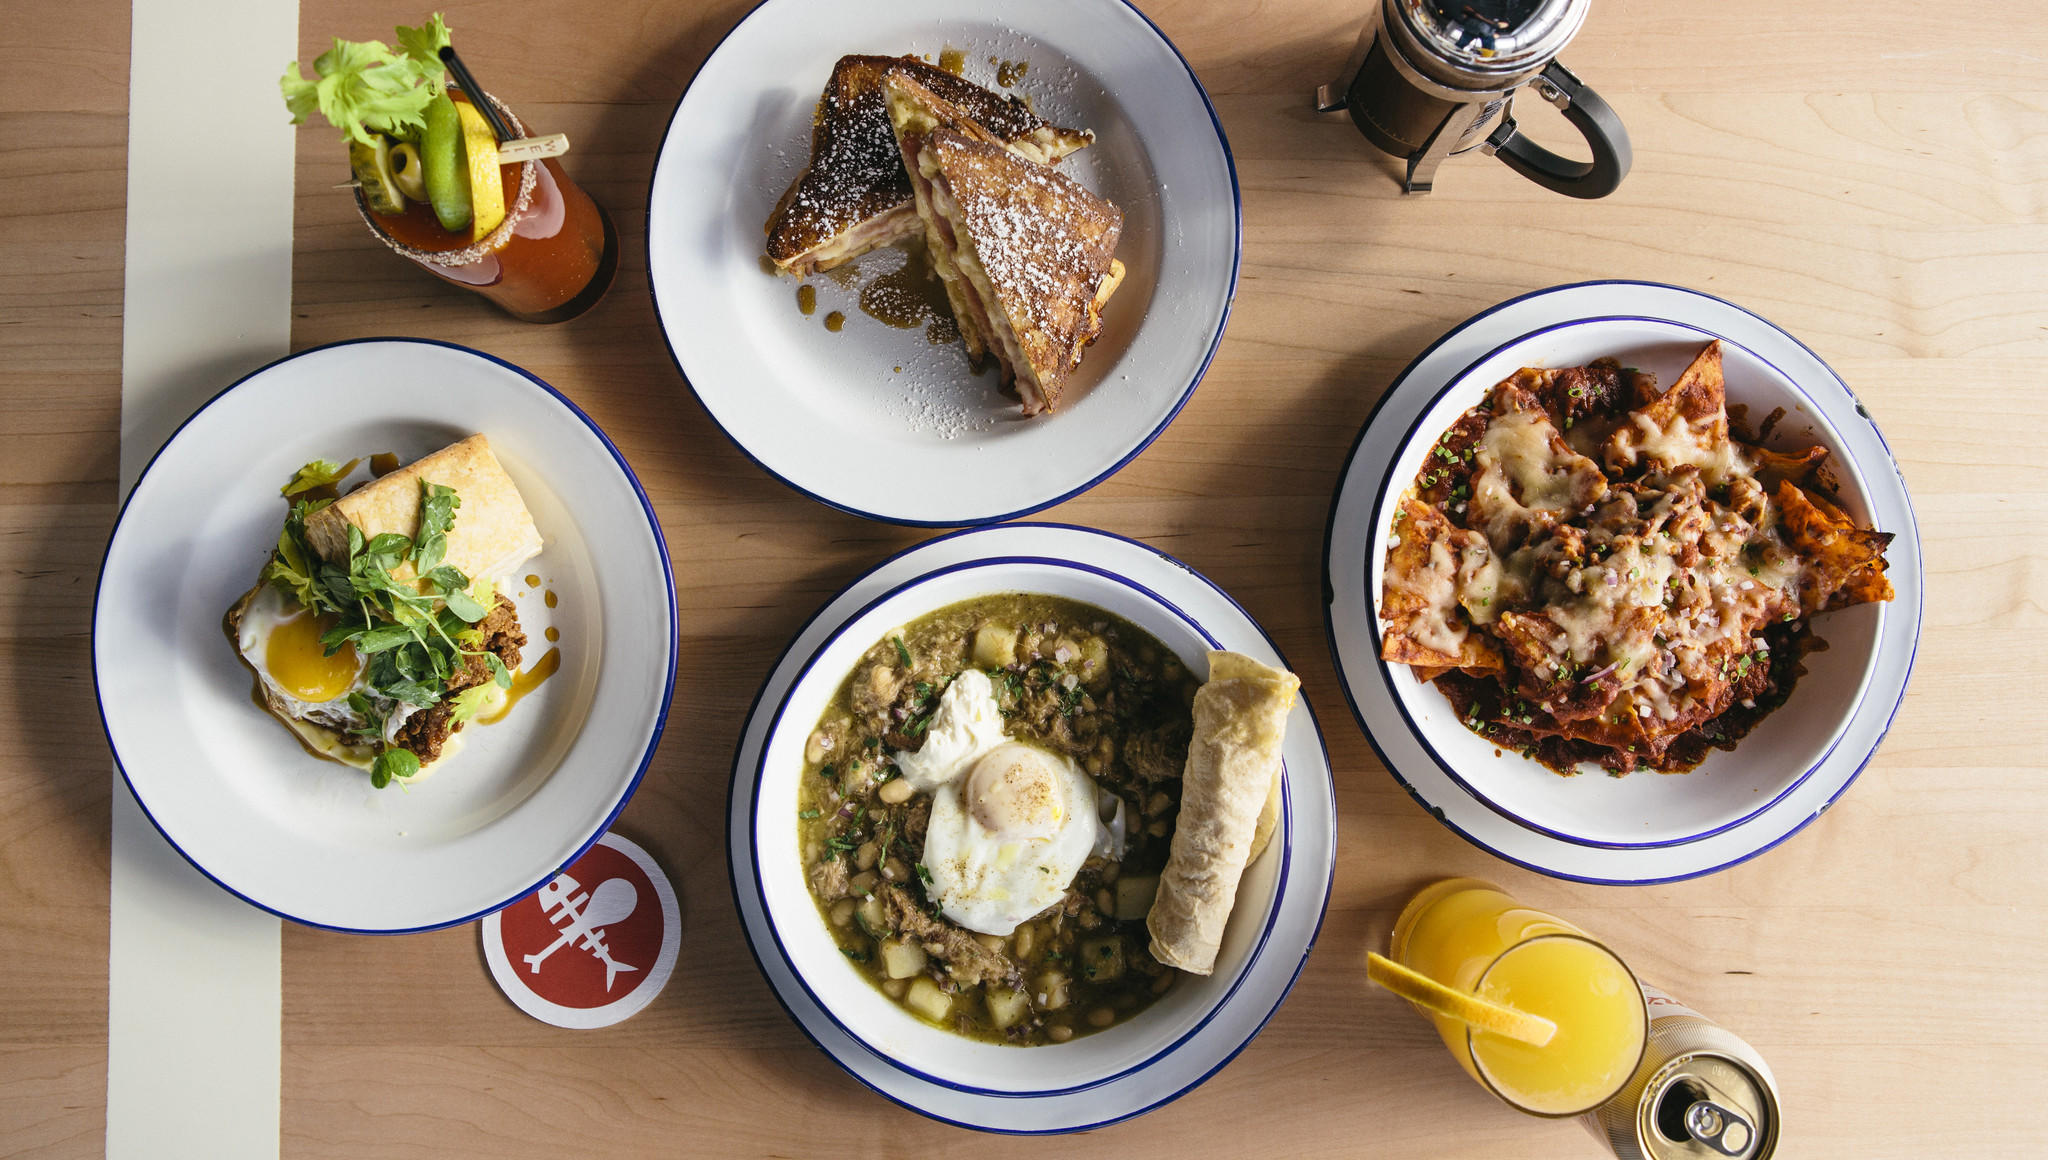 Brunch dishes at Parson's Chicken & Fish